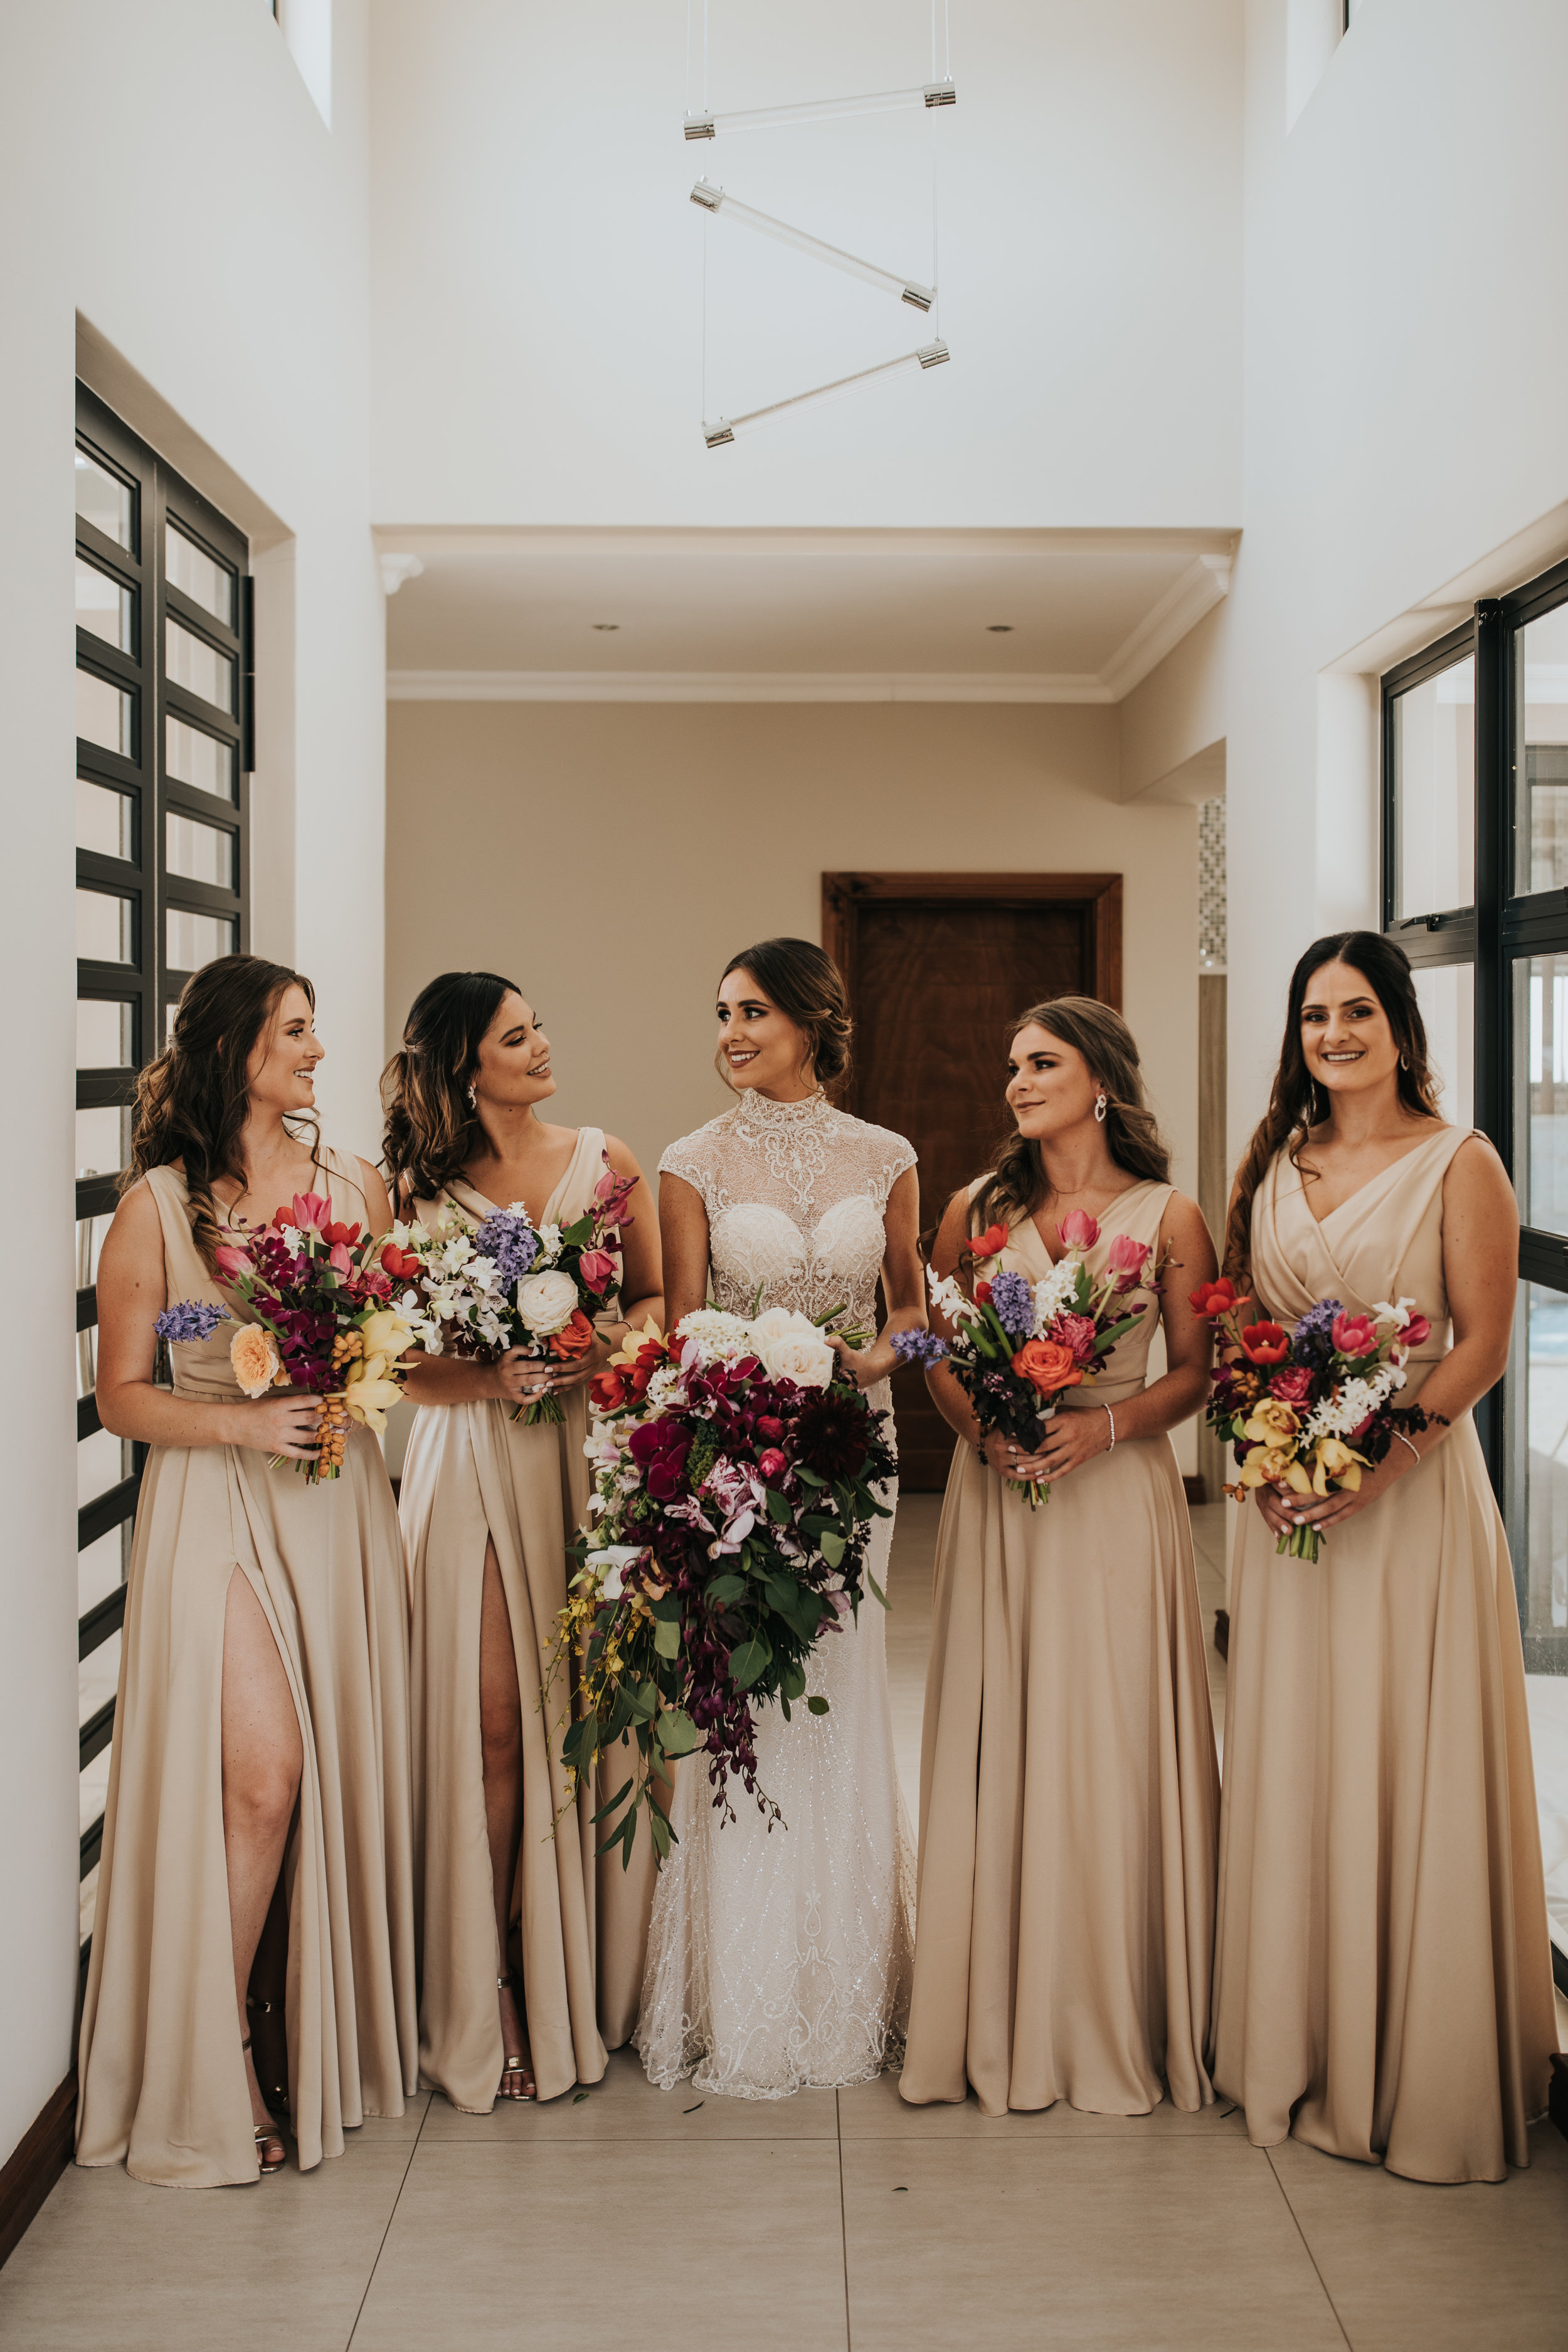 Wildeflower wedding flowers cape town bouquets